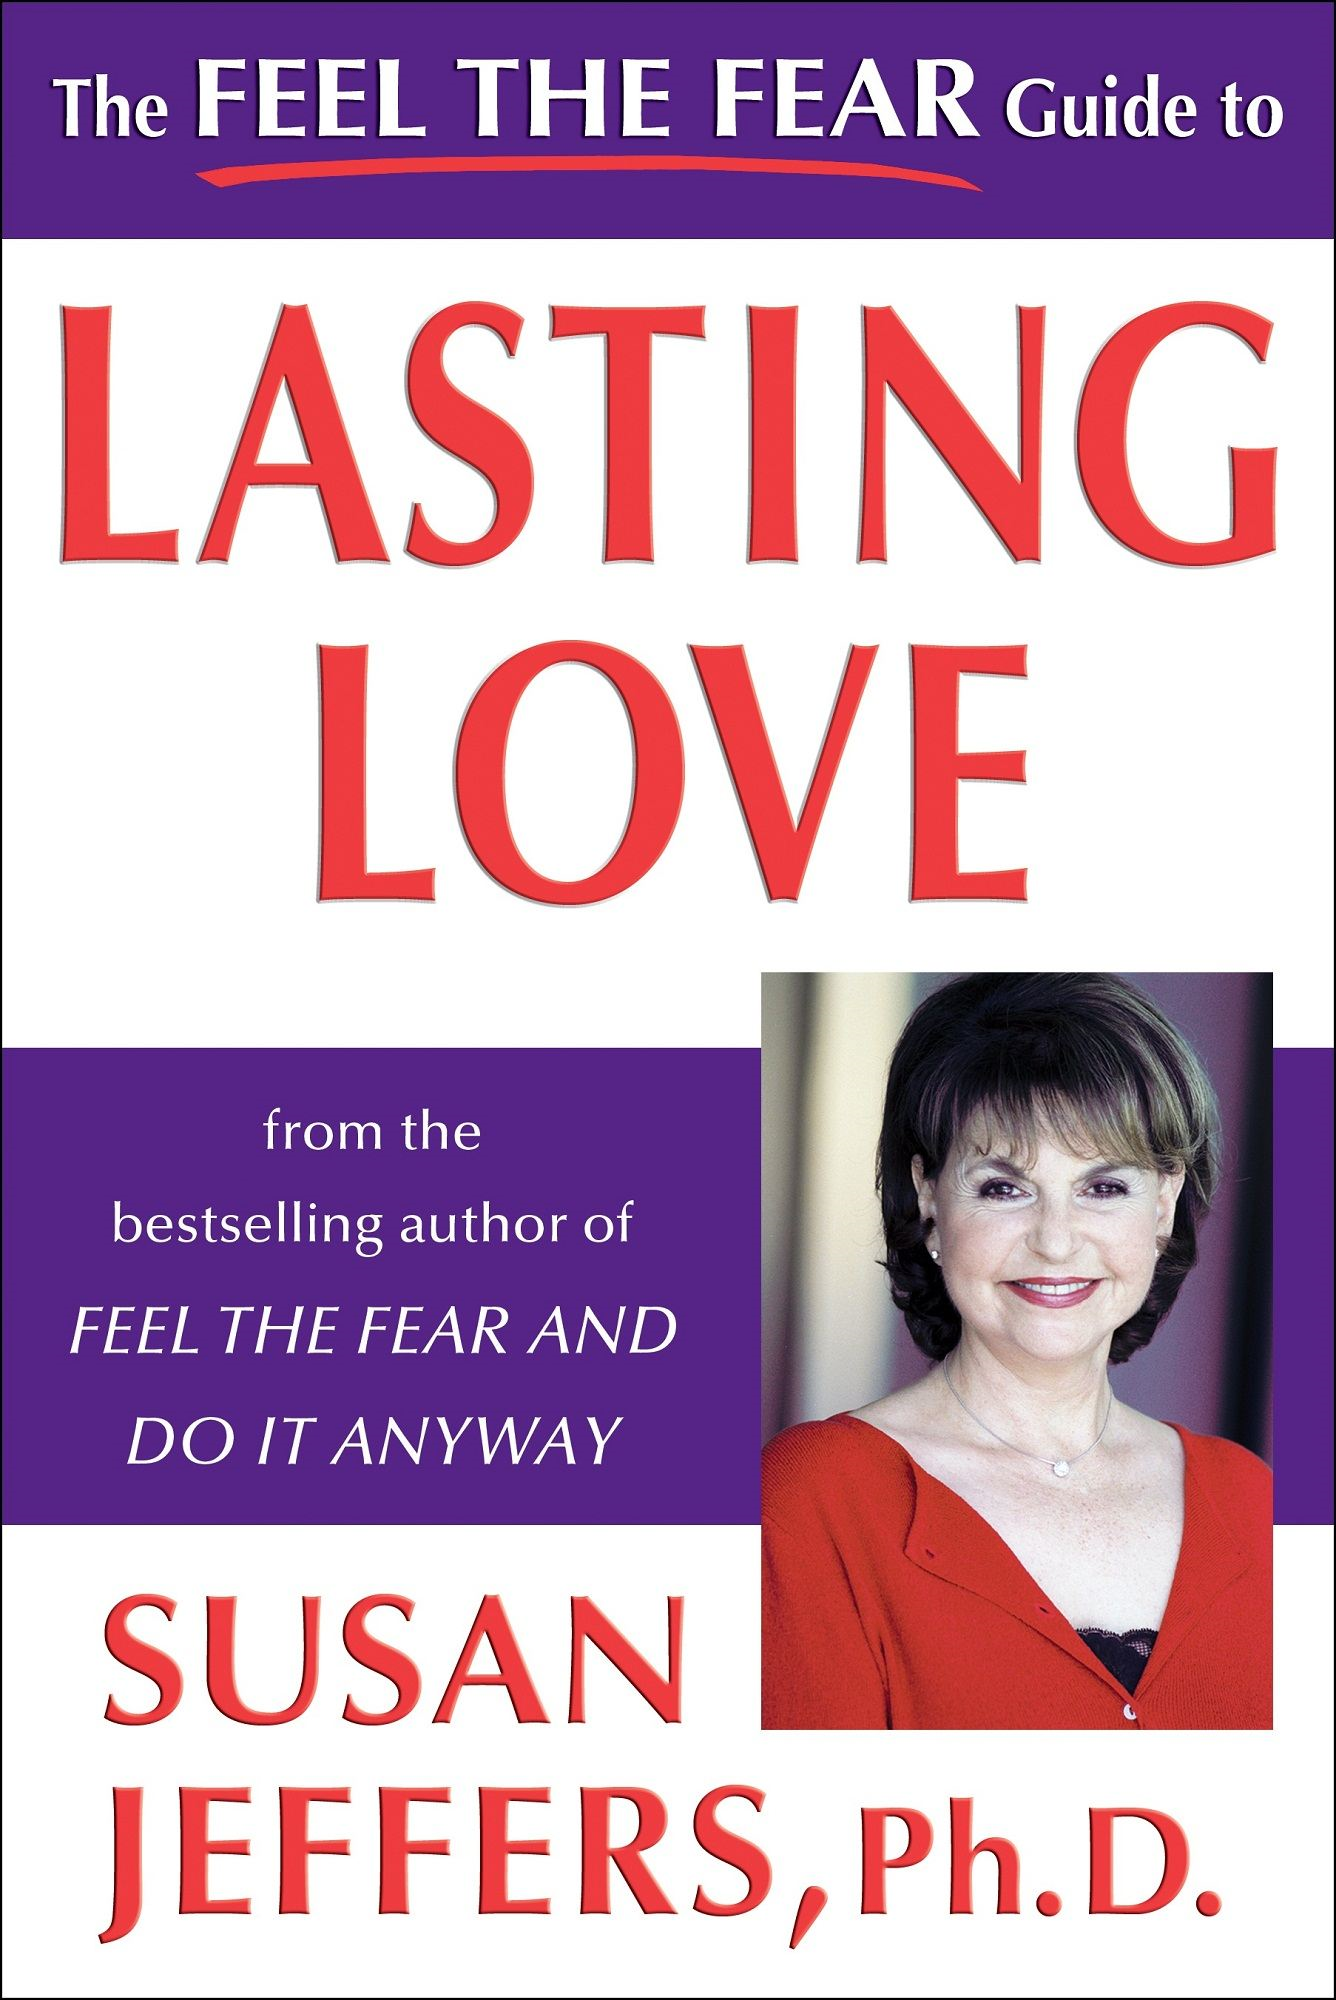 The Feel the Fear Guide to Lasting Love By: Susan Jeffers, Ph.D.